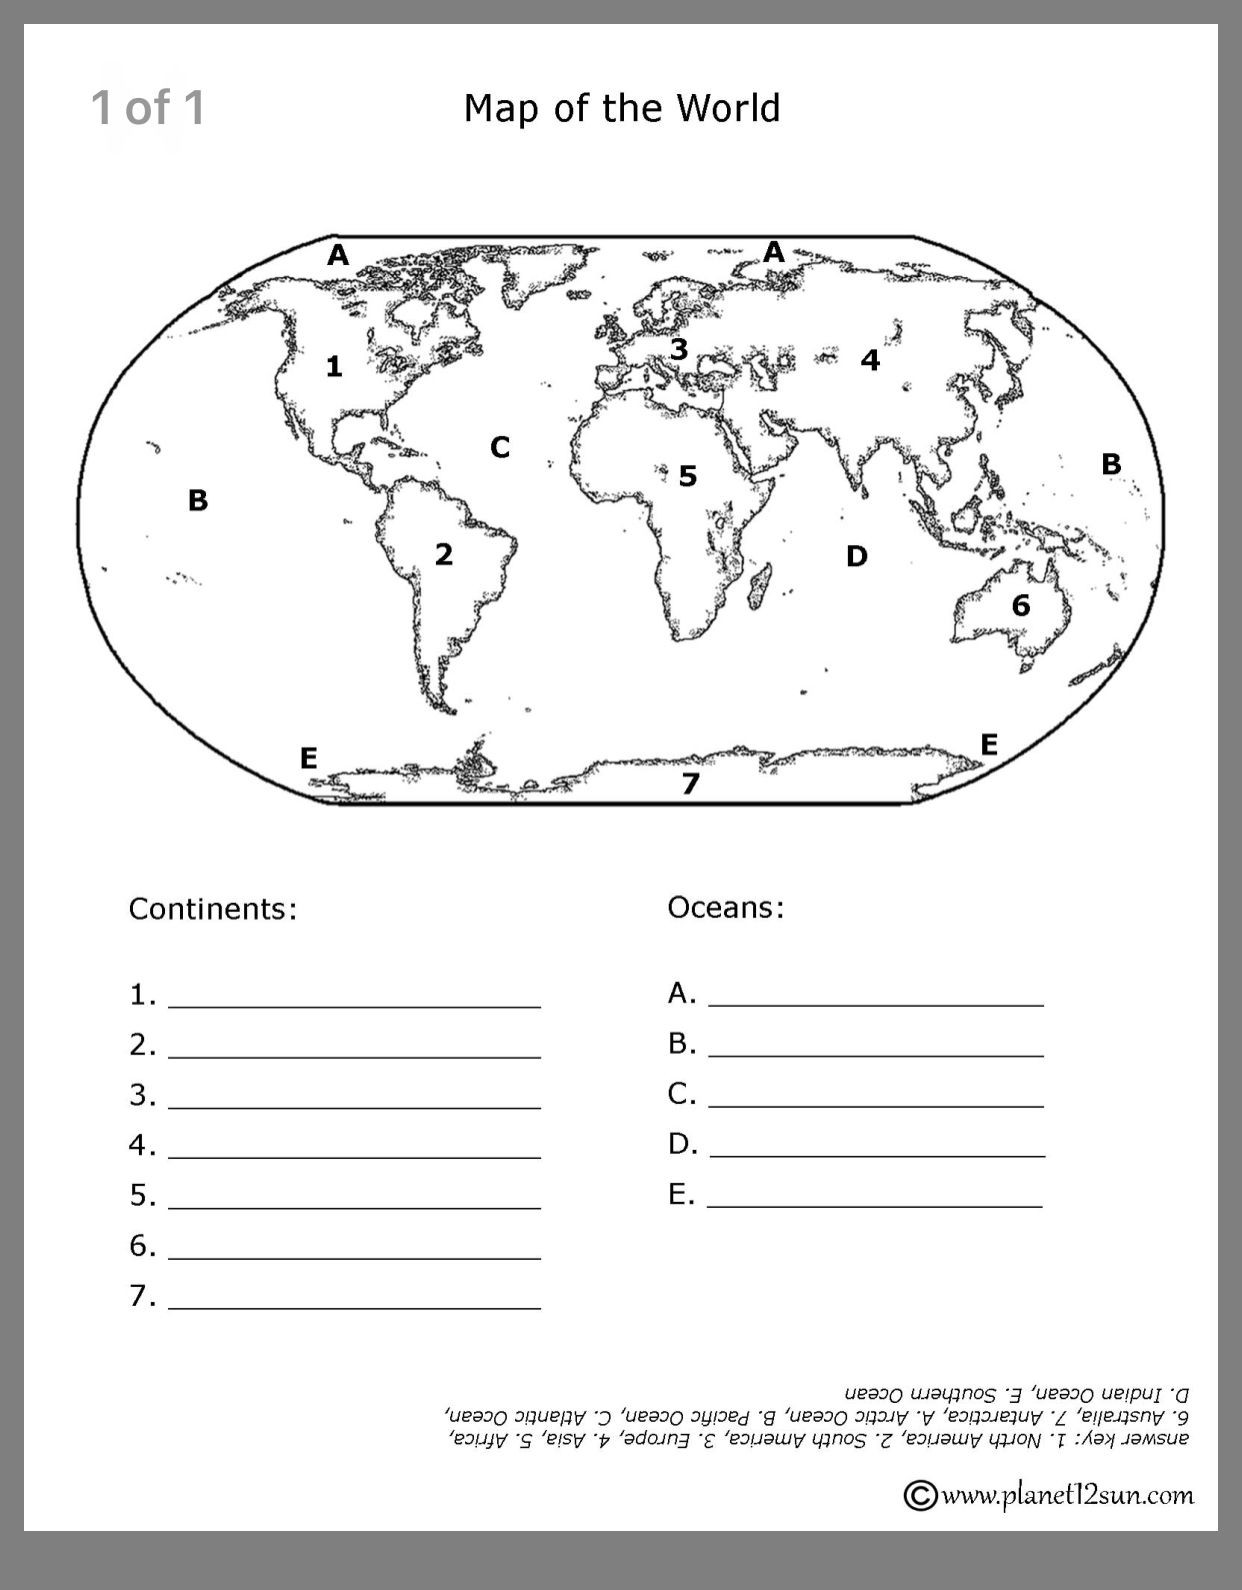 Continents and Oceans Worksheet Printable Pin by Dawn Tran On Geography for Ava with Images